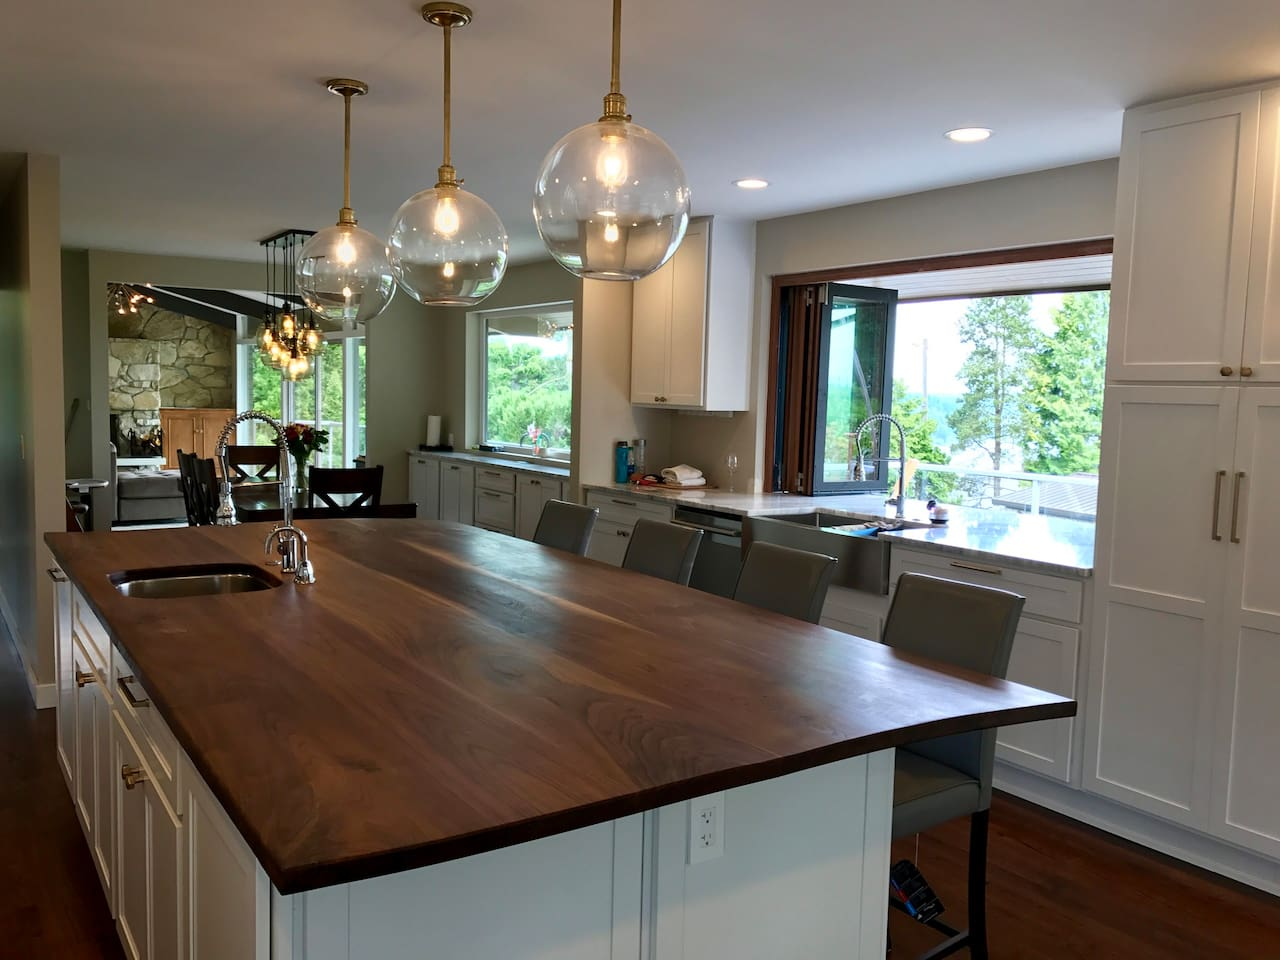 Masterpiece kitchen for your special vacation